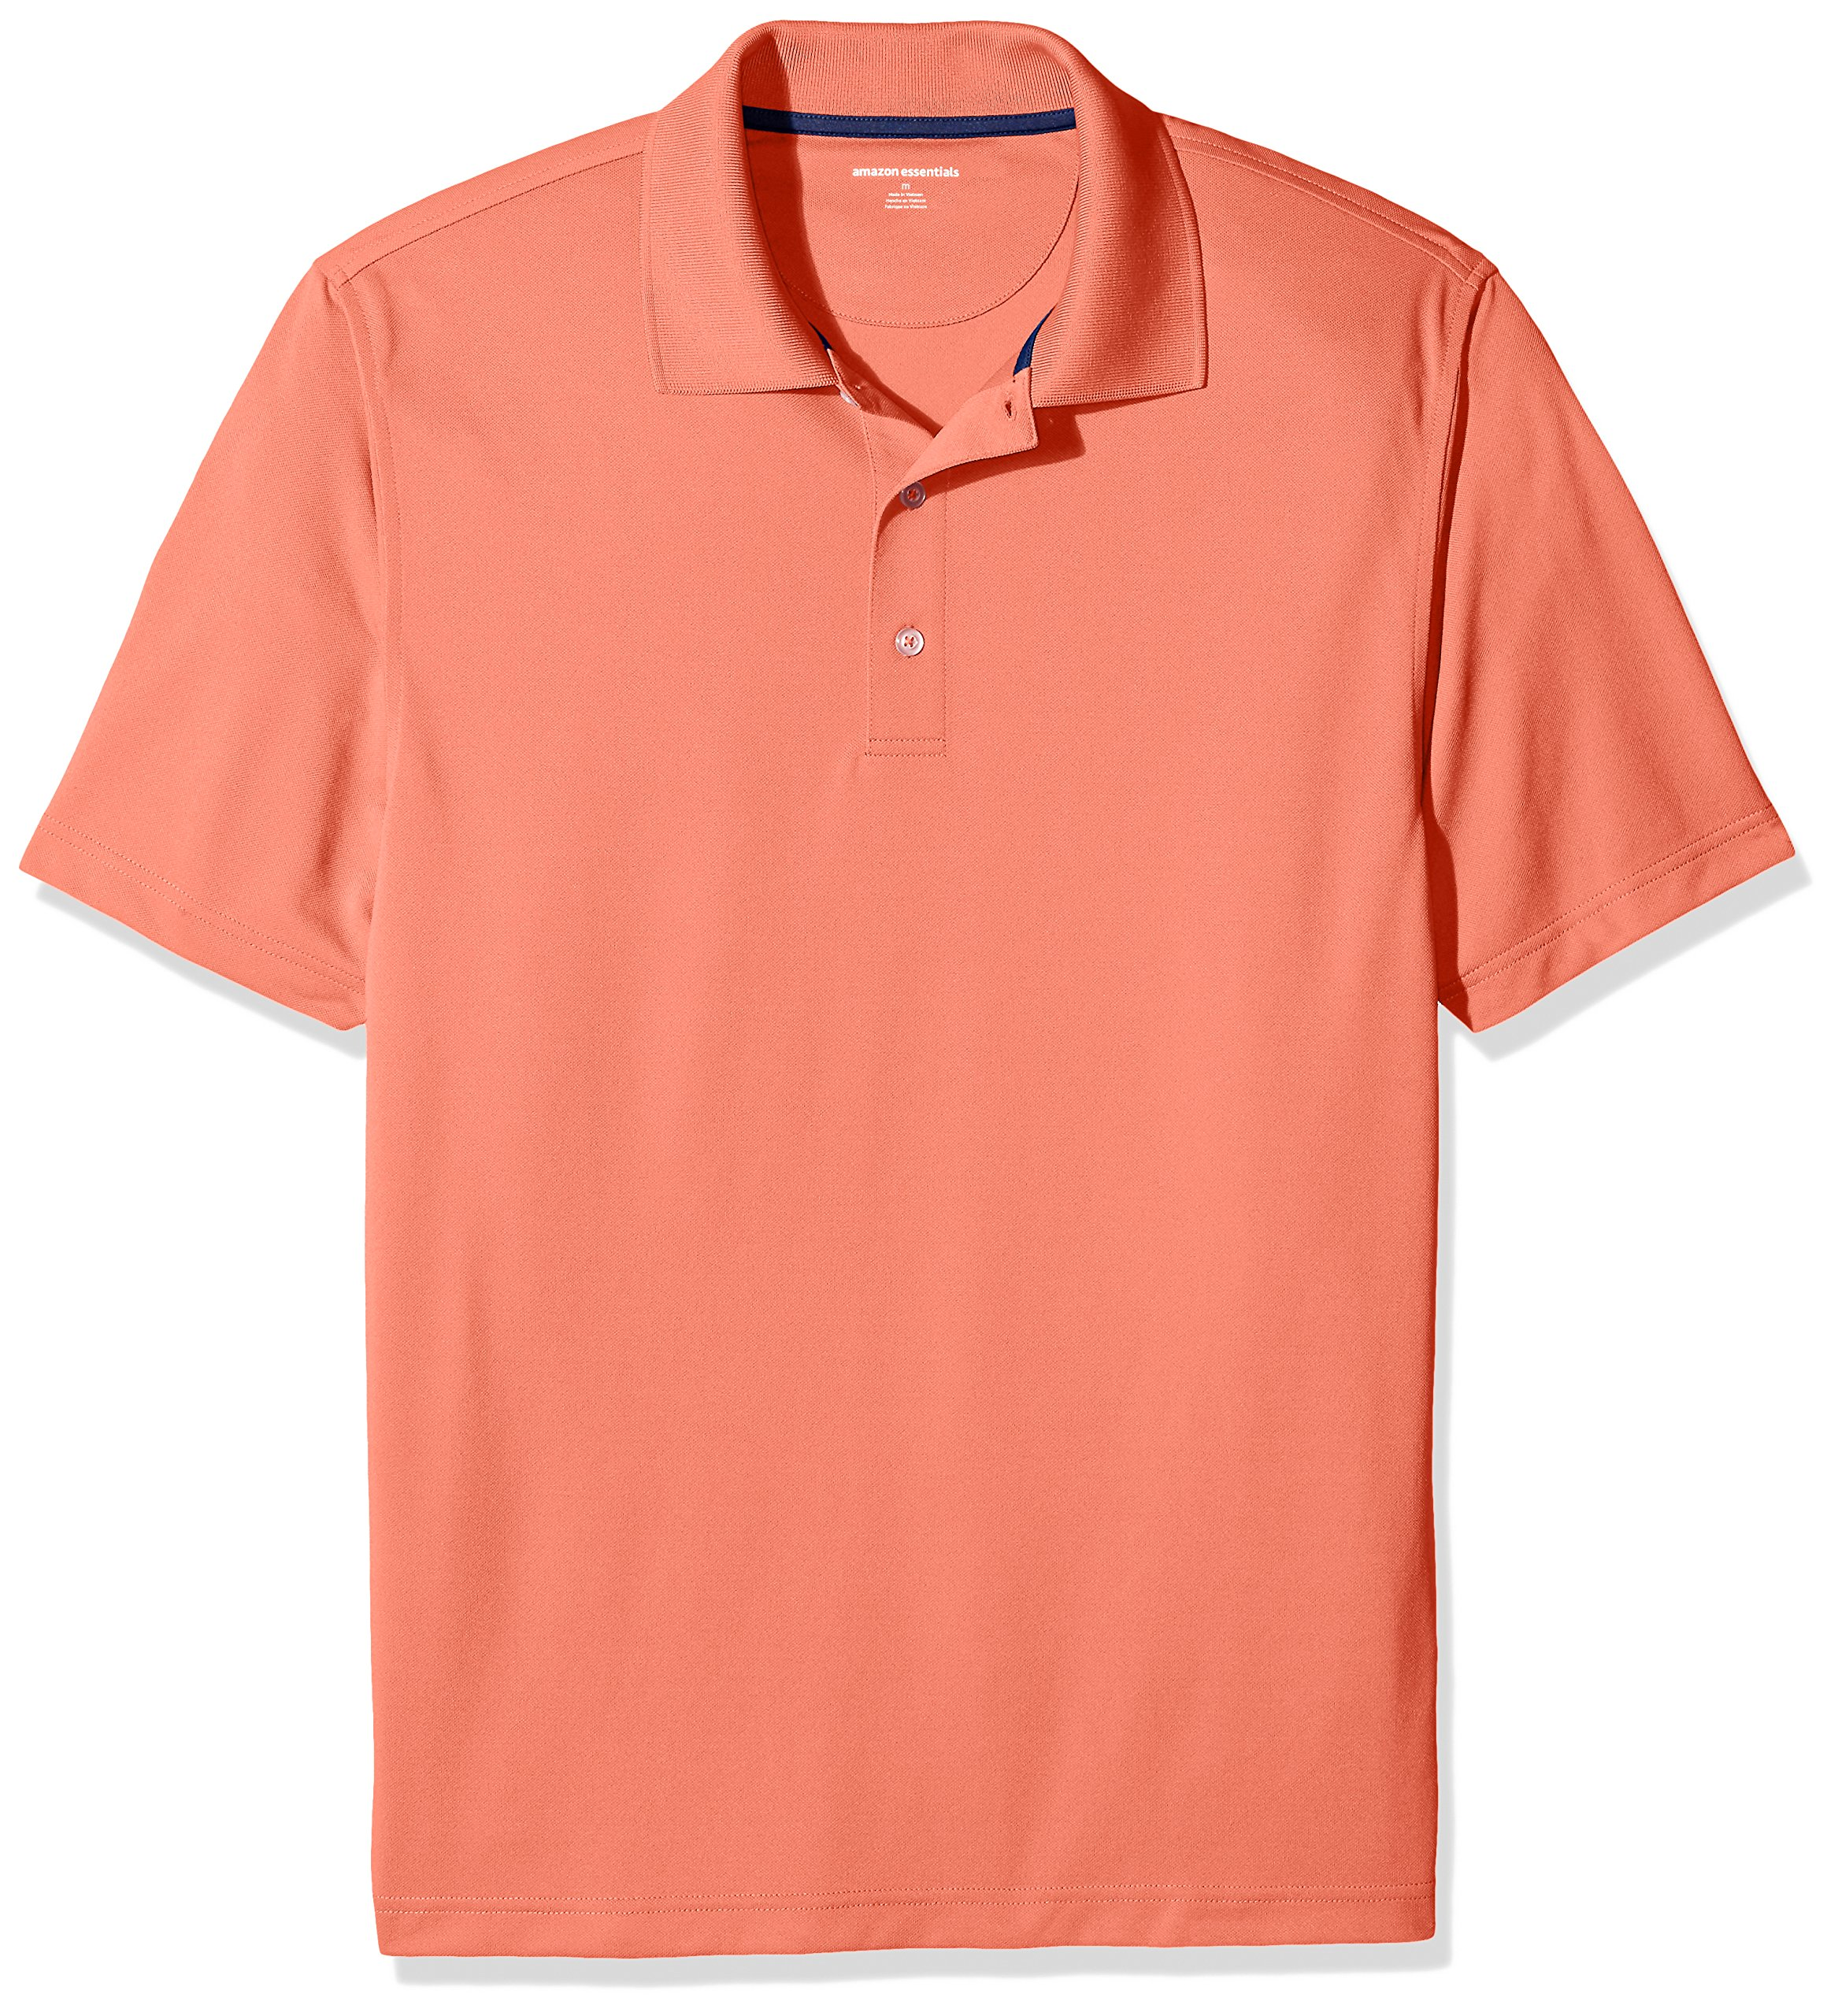 Amazon Essentials Men's Regular-Fit Quick-Dry Golf Polo Shirt, Coral, X-Small